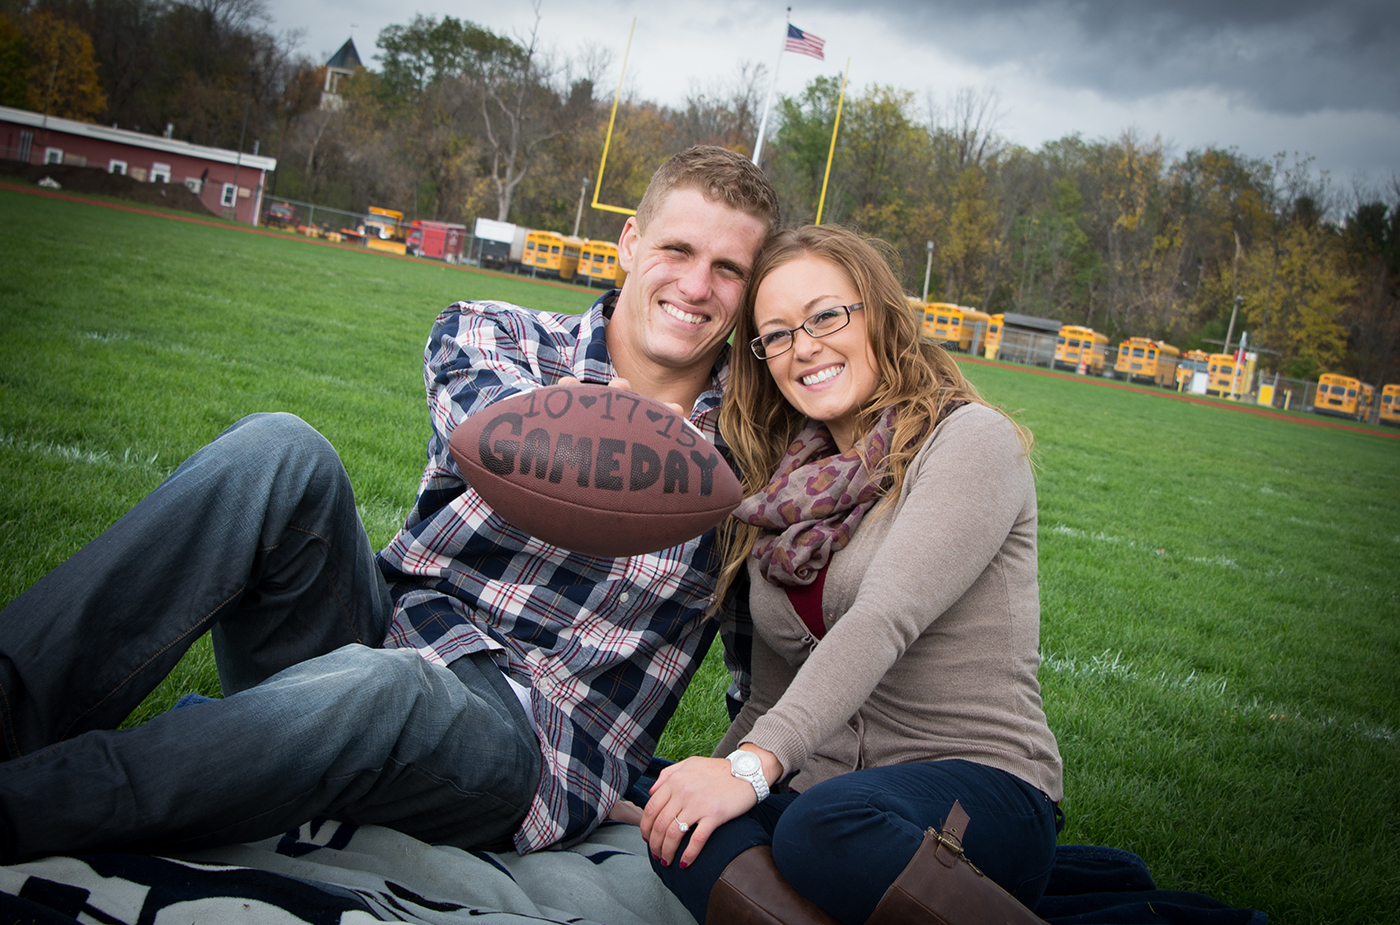 All Occasions Photography Albany NY - Engagement Photography School Football Field